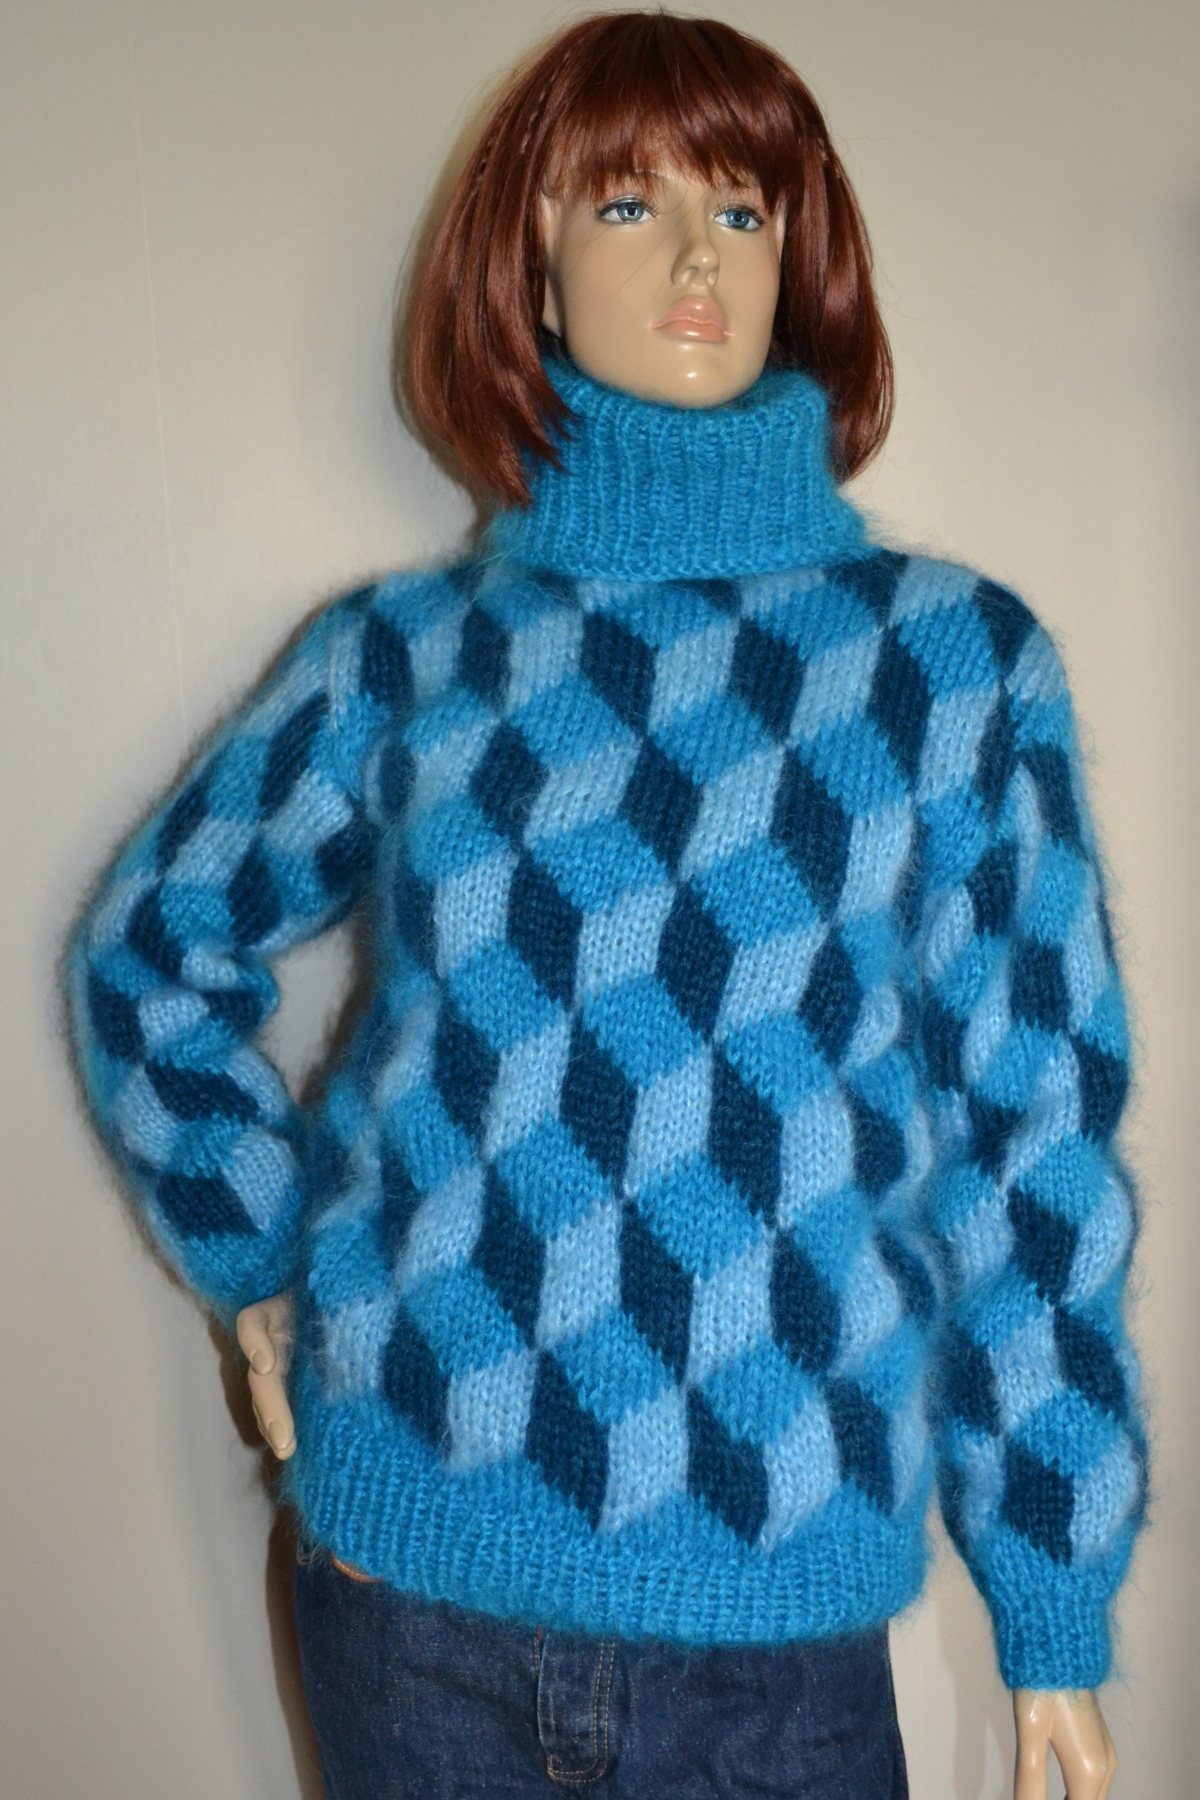 Hand knitted mohair turquoise sweater with tumbling blocks S